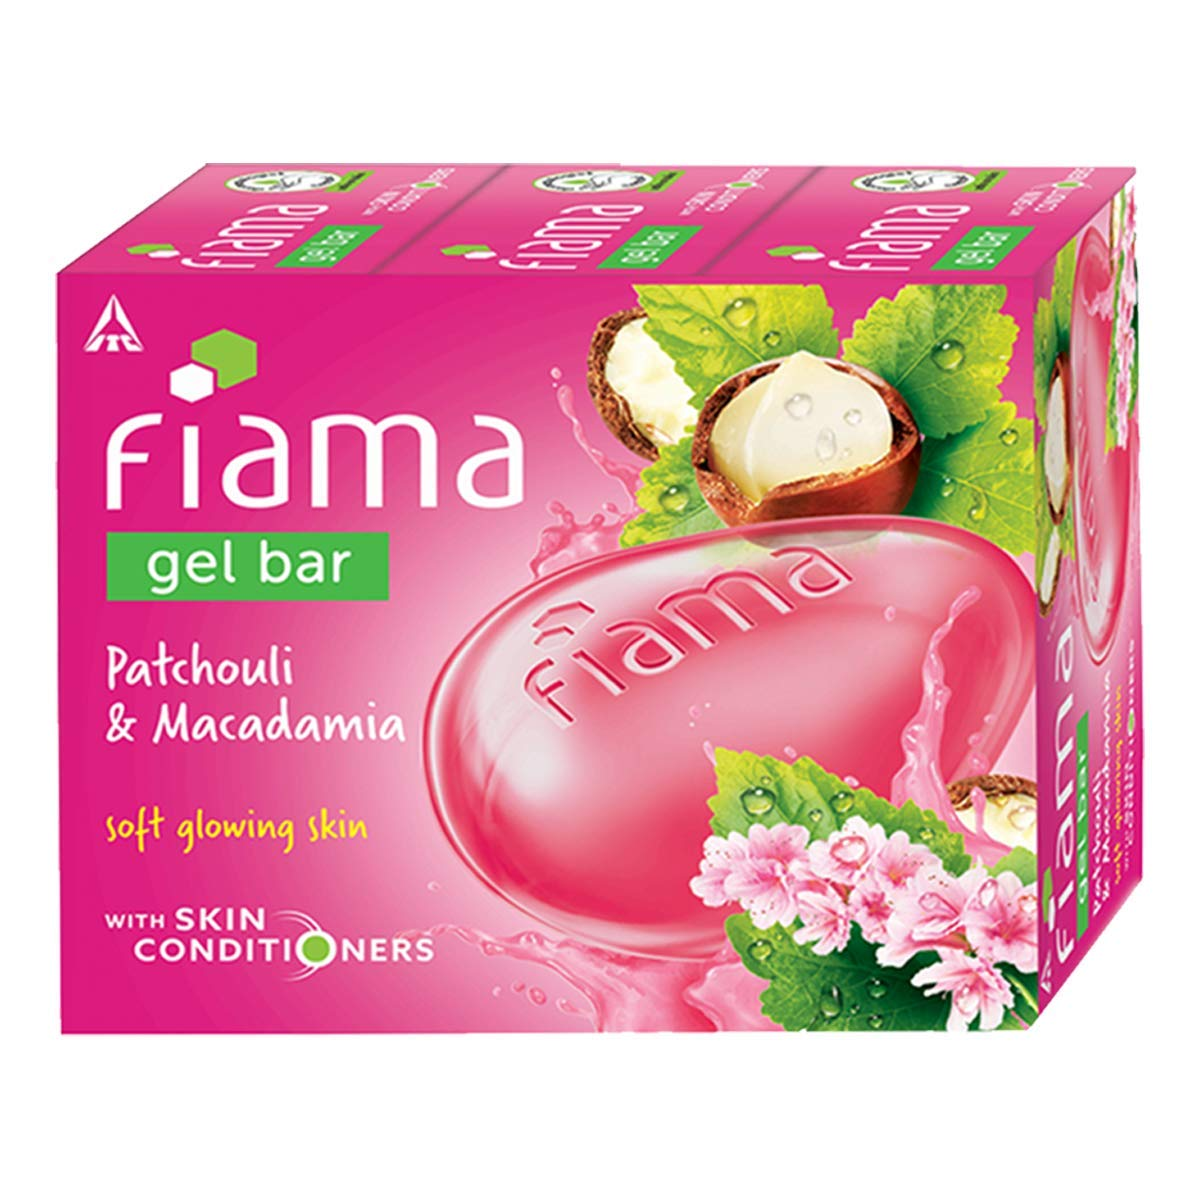 Fiama Gel Bar Patchouli and Macadamia for soft glowing skin, with skin conditioners, 125 gm (Pack of 3)